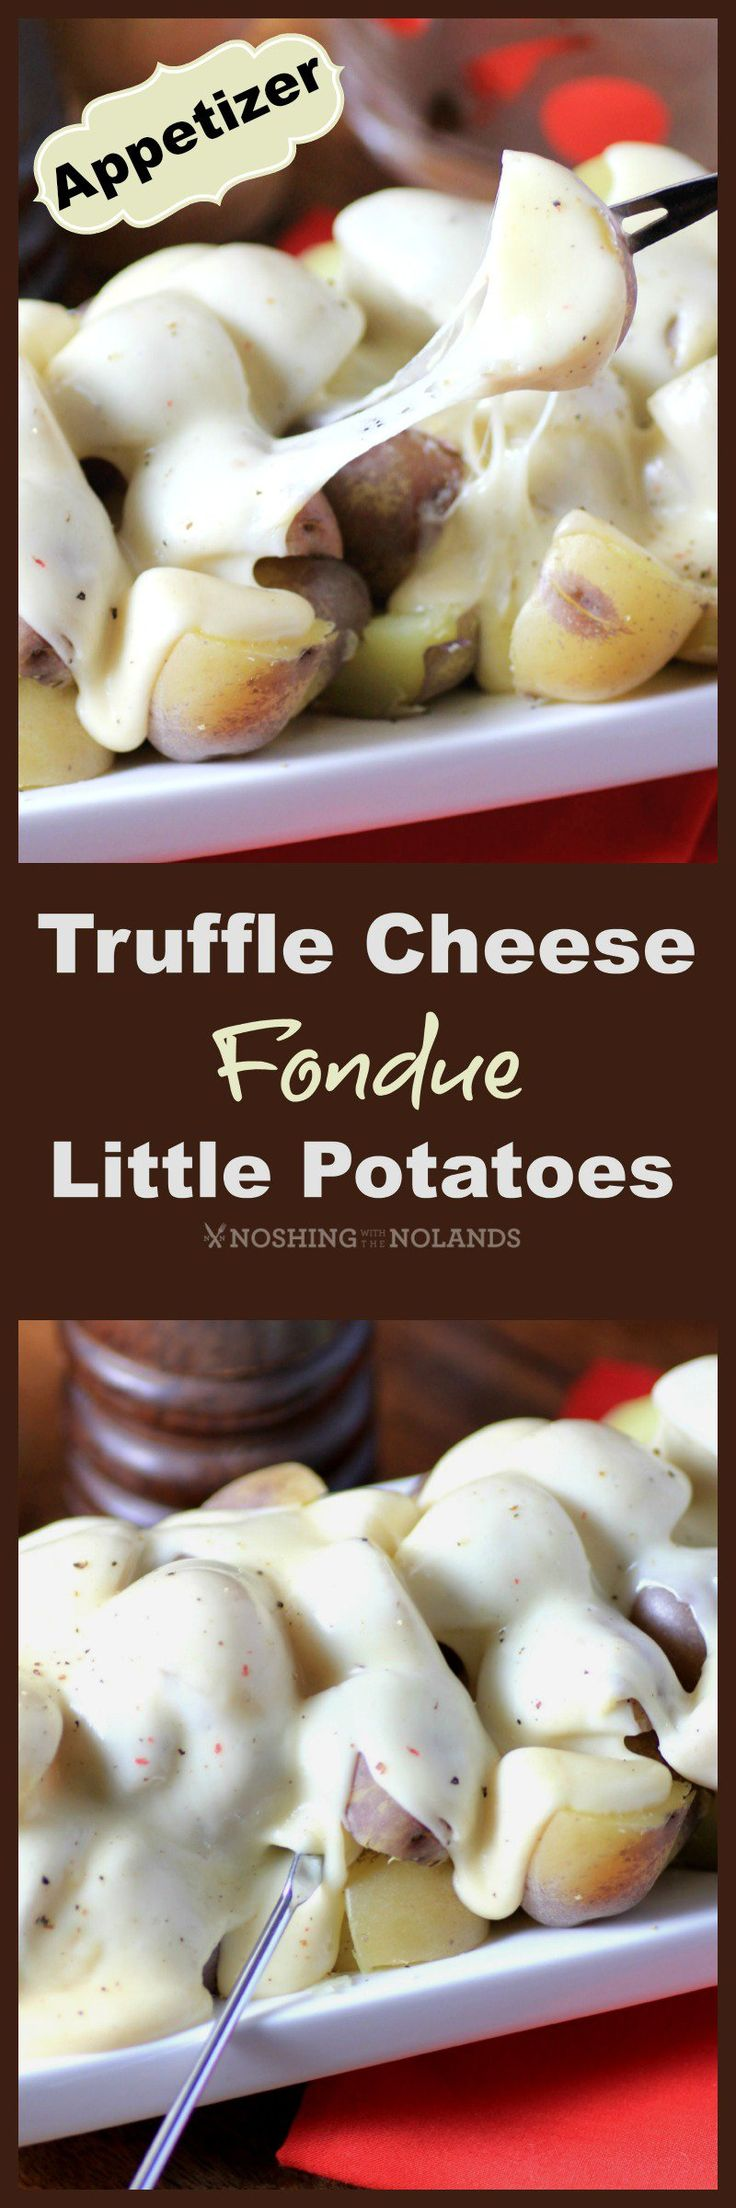 I have been indulging in a little poutine of late but I wanted to take these potatoes to a whole new level with Truffle Cheese Fondue Little Potatoes.